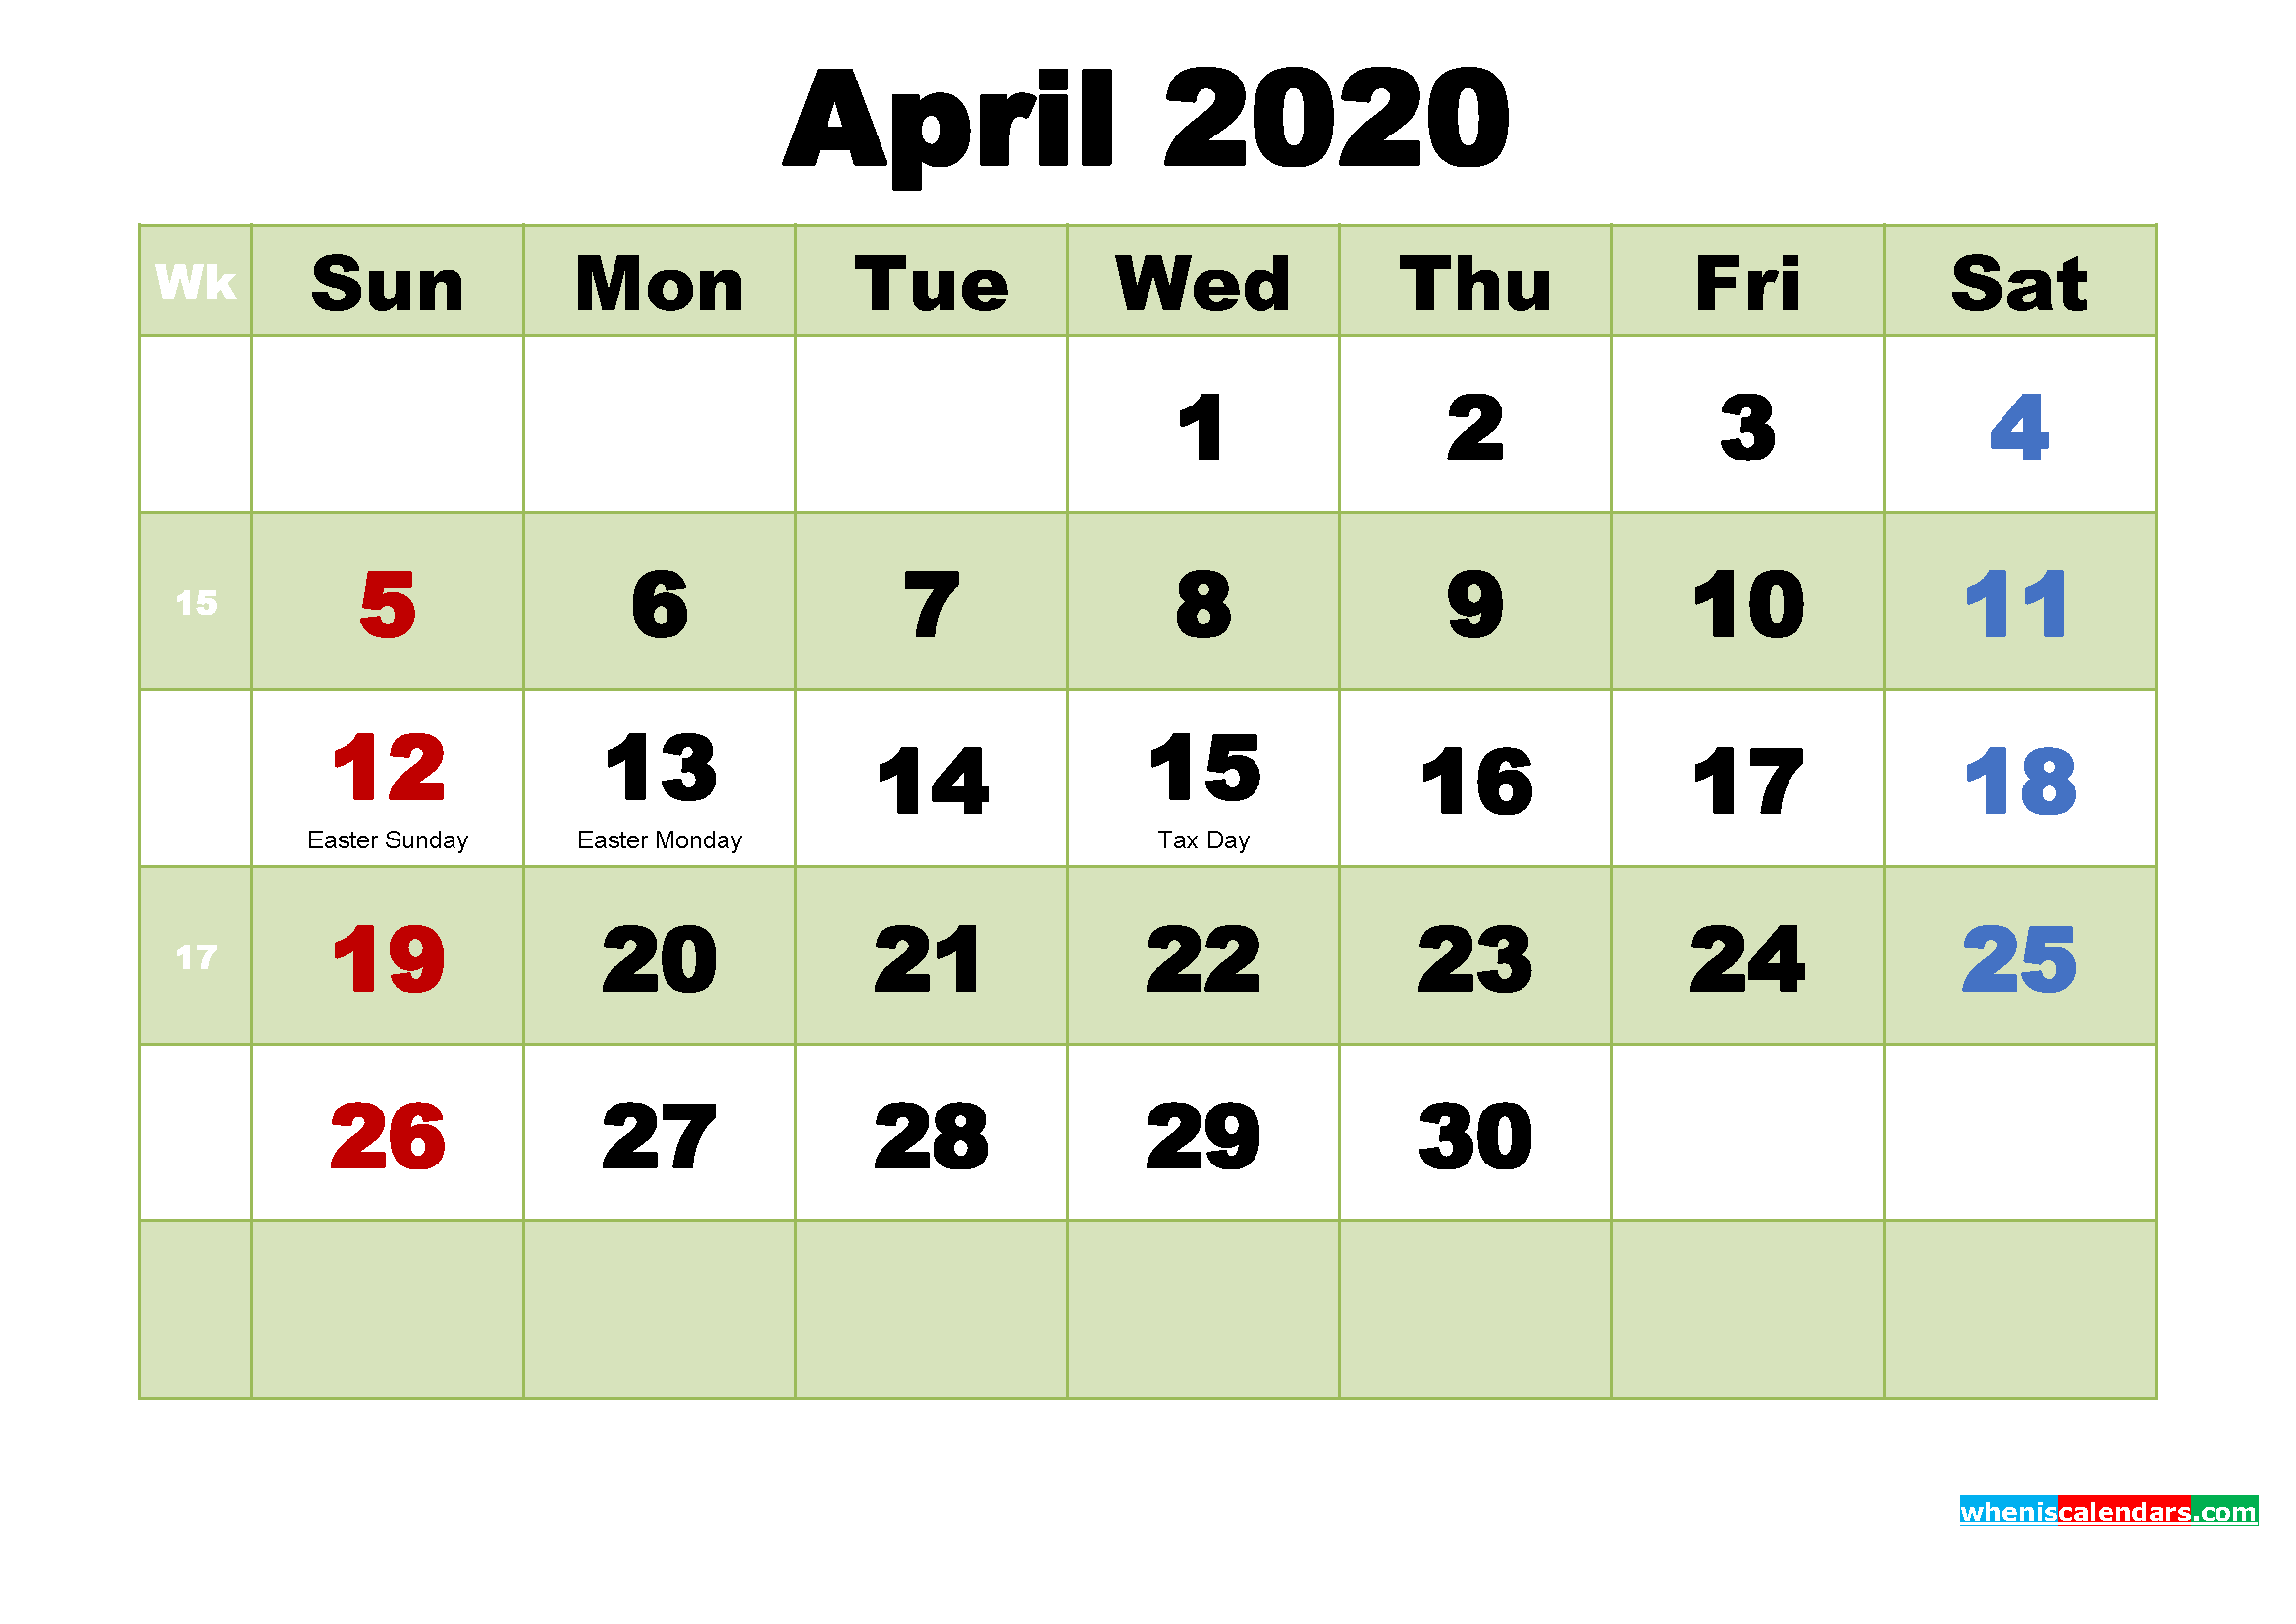 April 2020 Desktop Calendar Free Download